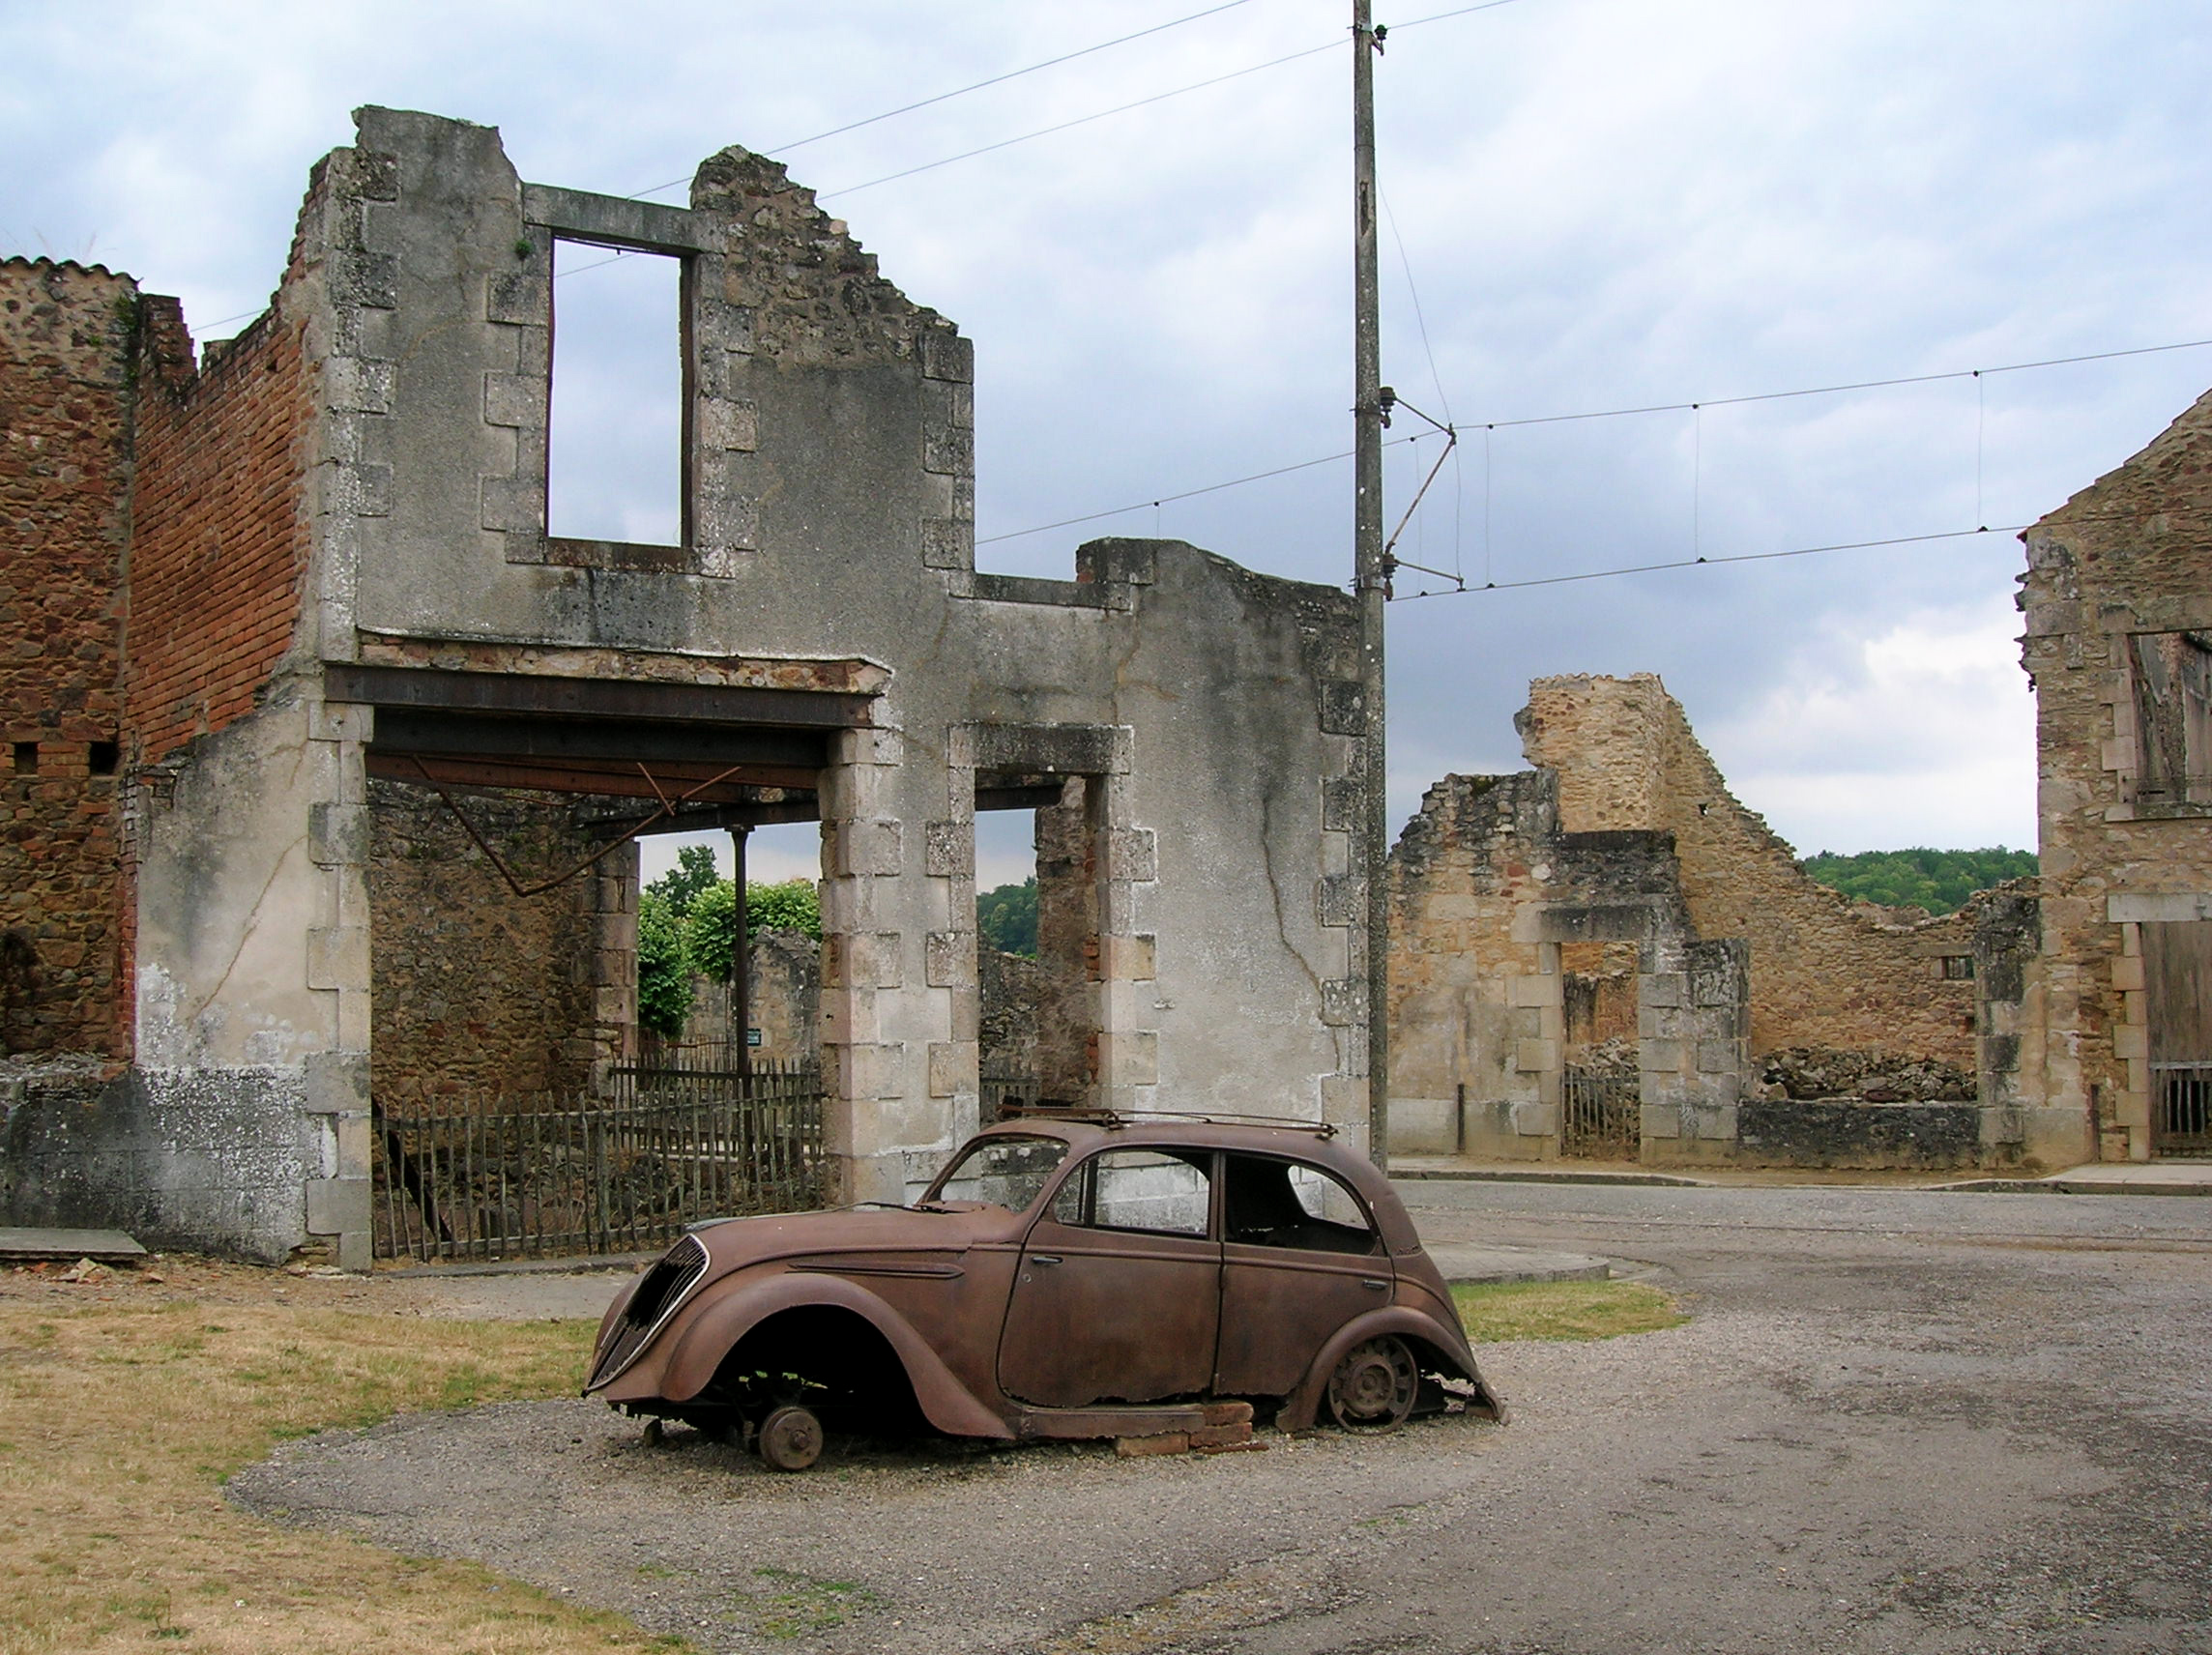 Car_in_Oradour-sur-Glane4.jpg